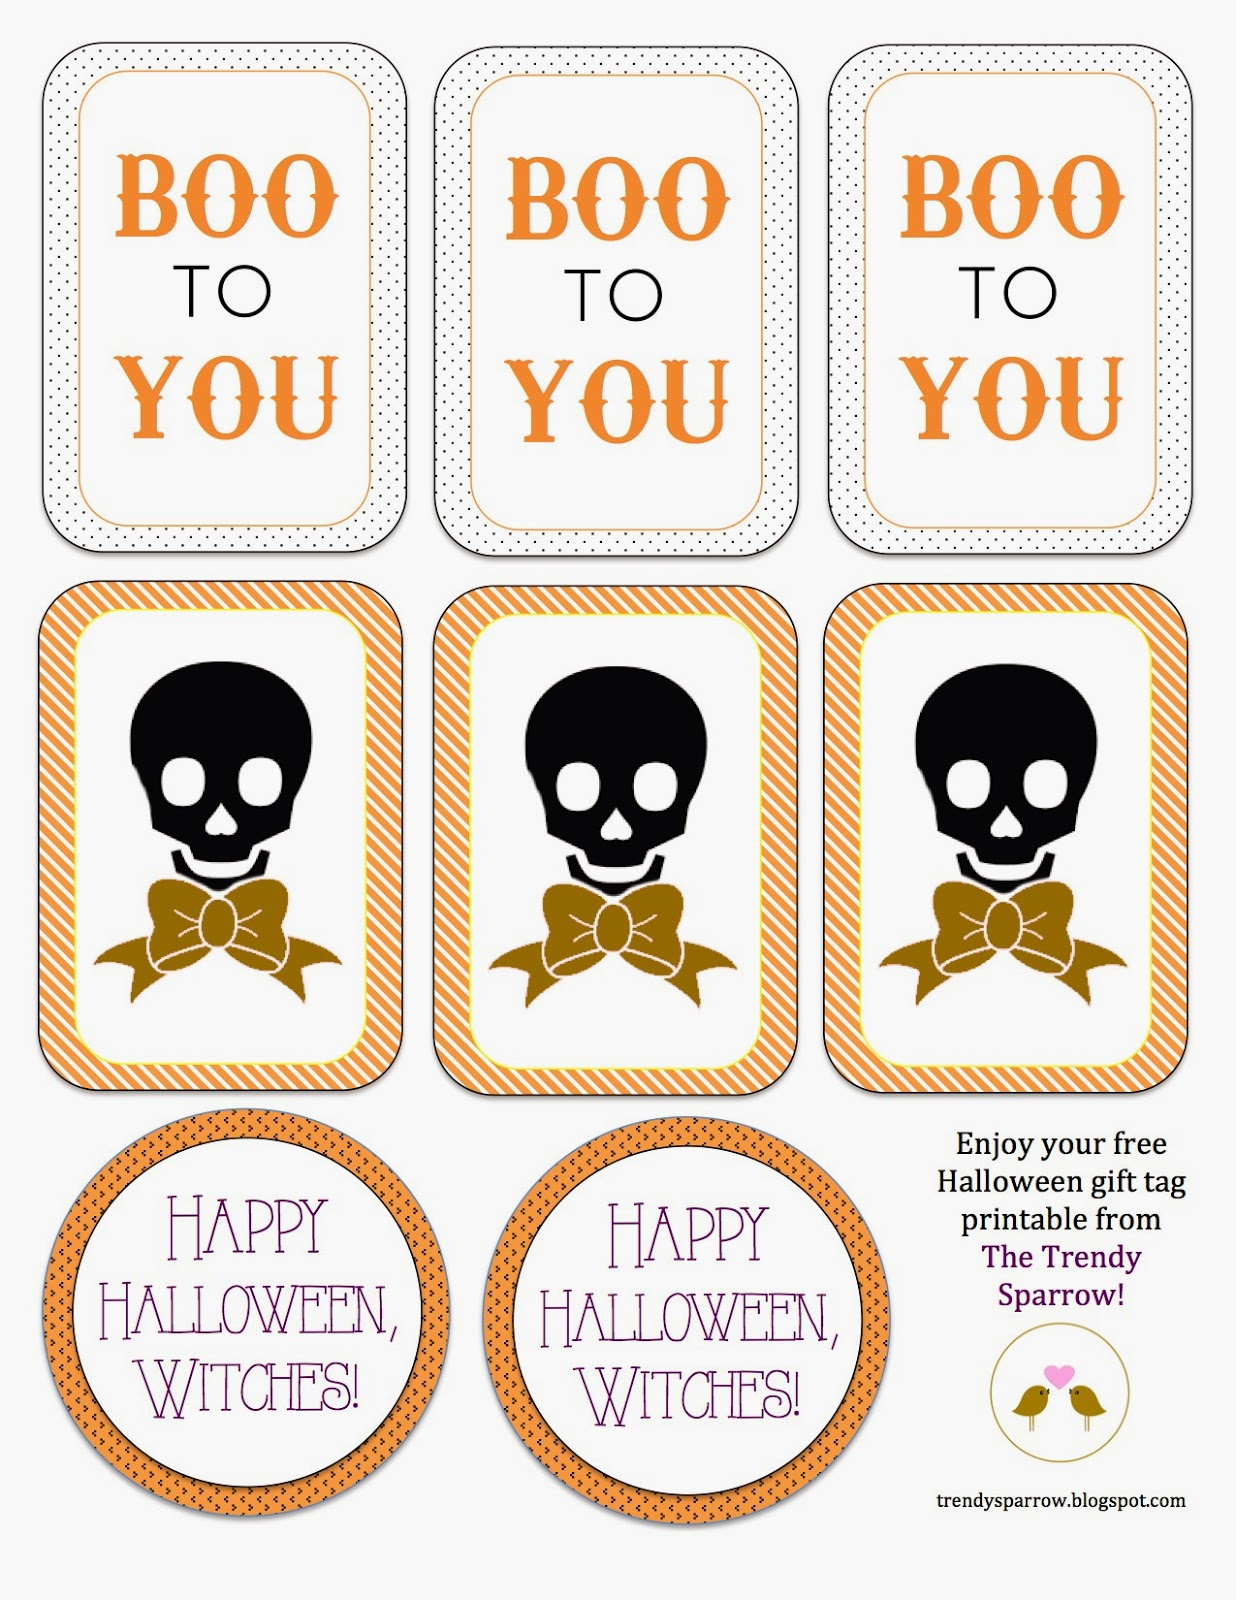 The Trendy Sparrow: Free Printable: Halloween Gift Tags - Free Printable Goodie Bag Tags